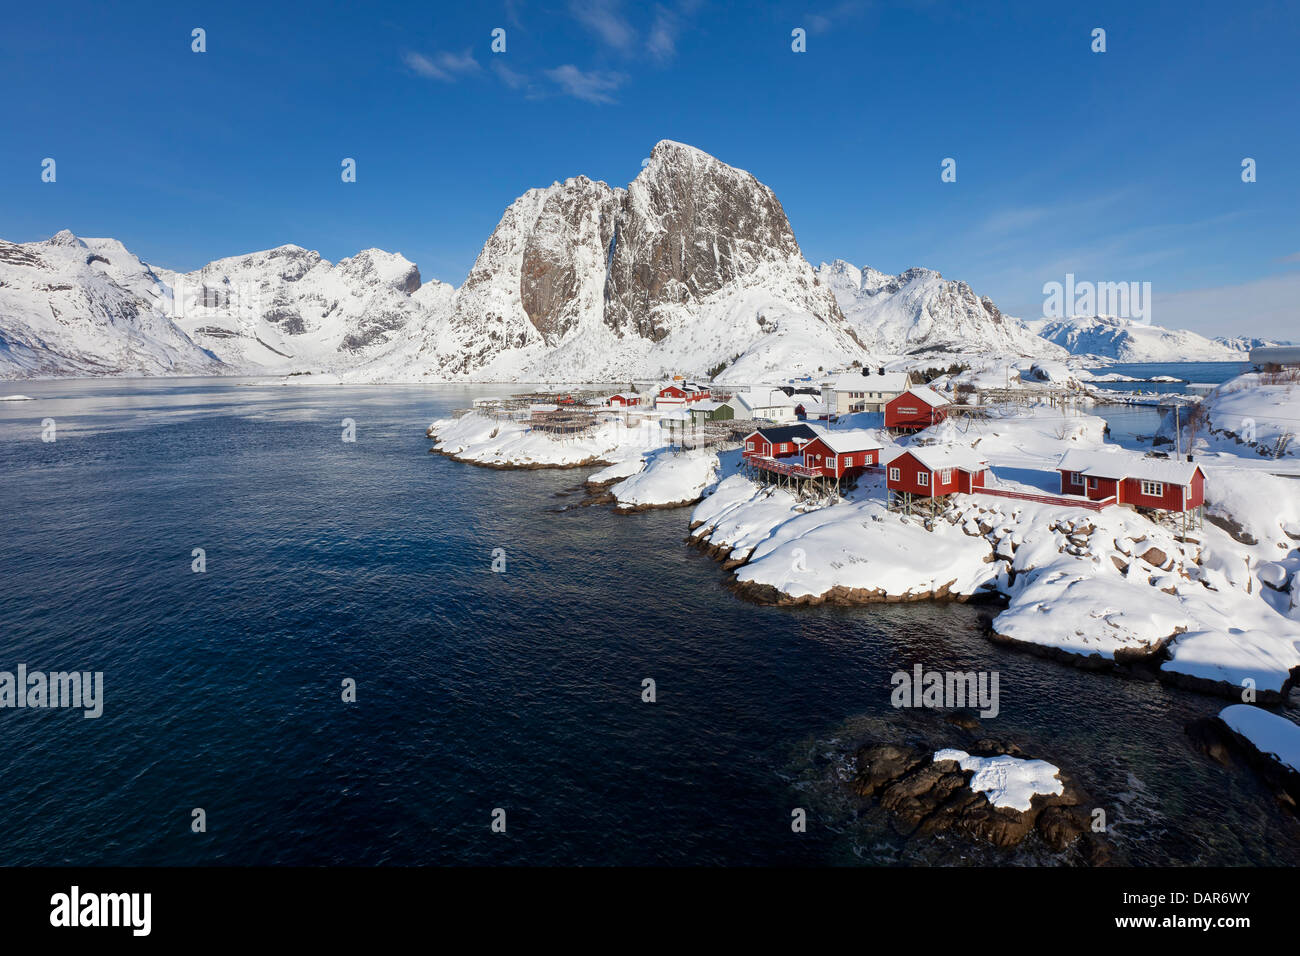 Rorbuer cabins and wooden racks with drying stockfish at Hamnøy / Hamnoy in the snow in winter, Lofoten, Nordland, Stock Photo